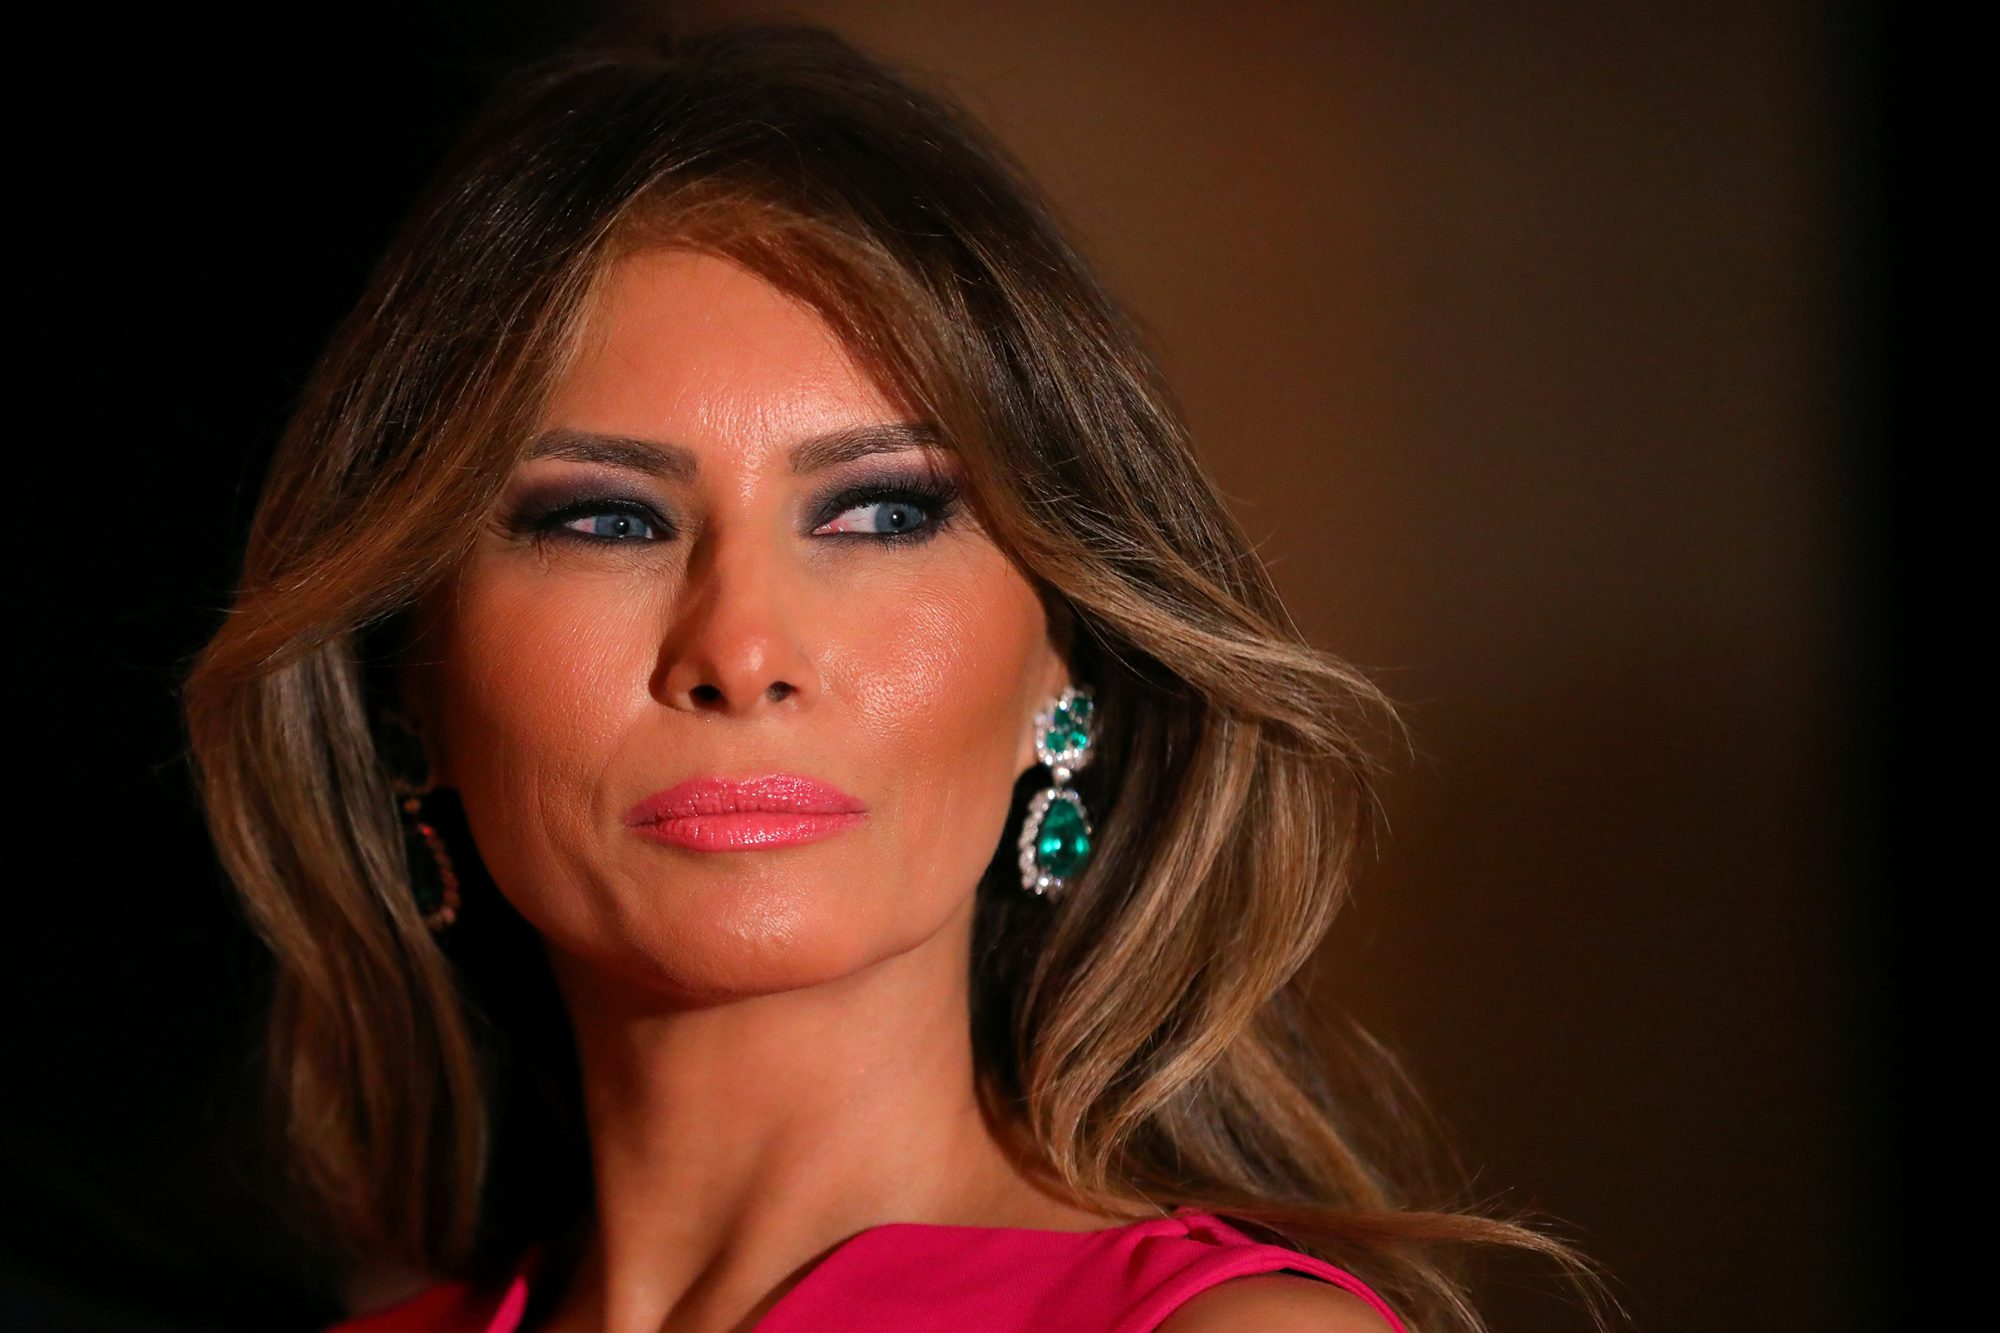 First Lady Melania Trump and U.S. President Donald Trump (not pictured) attend the 60th Annual Red Cross Gala at Mar-a-Lago club in Palm Beach, Florida, U.S.